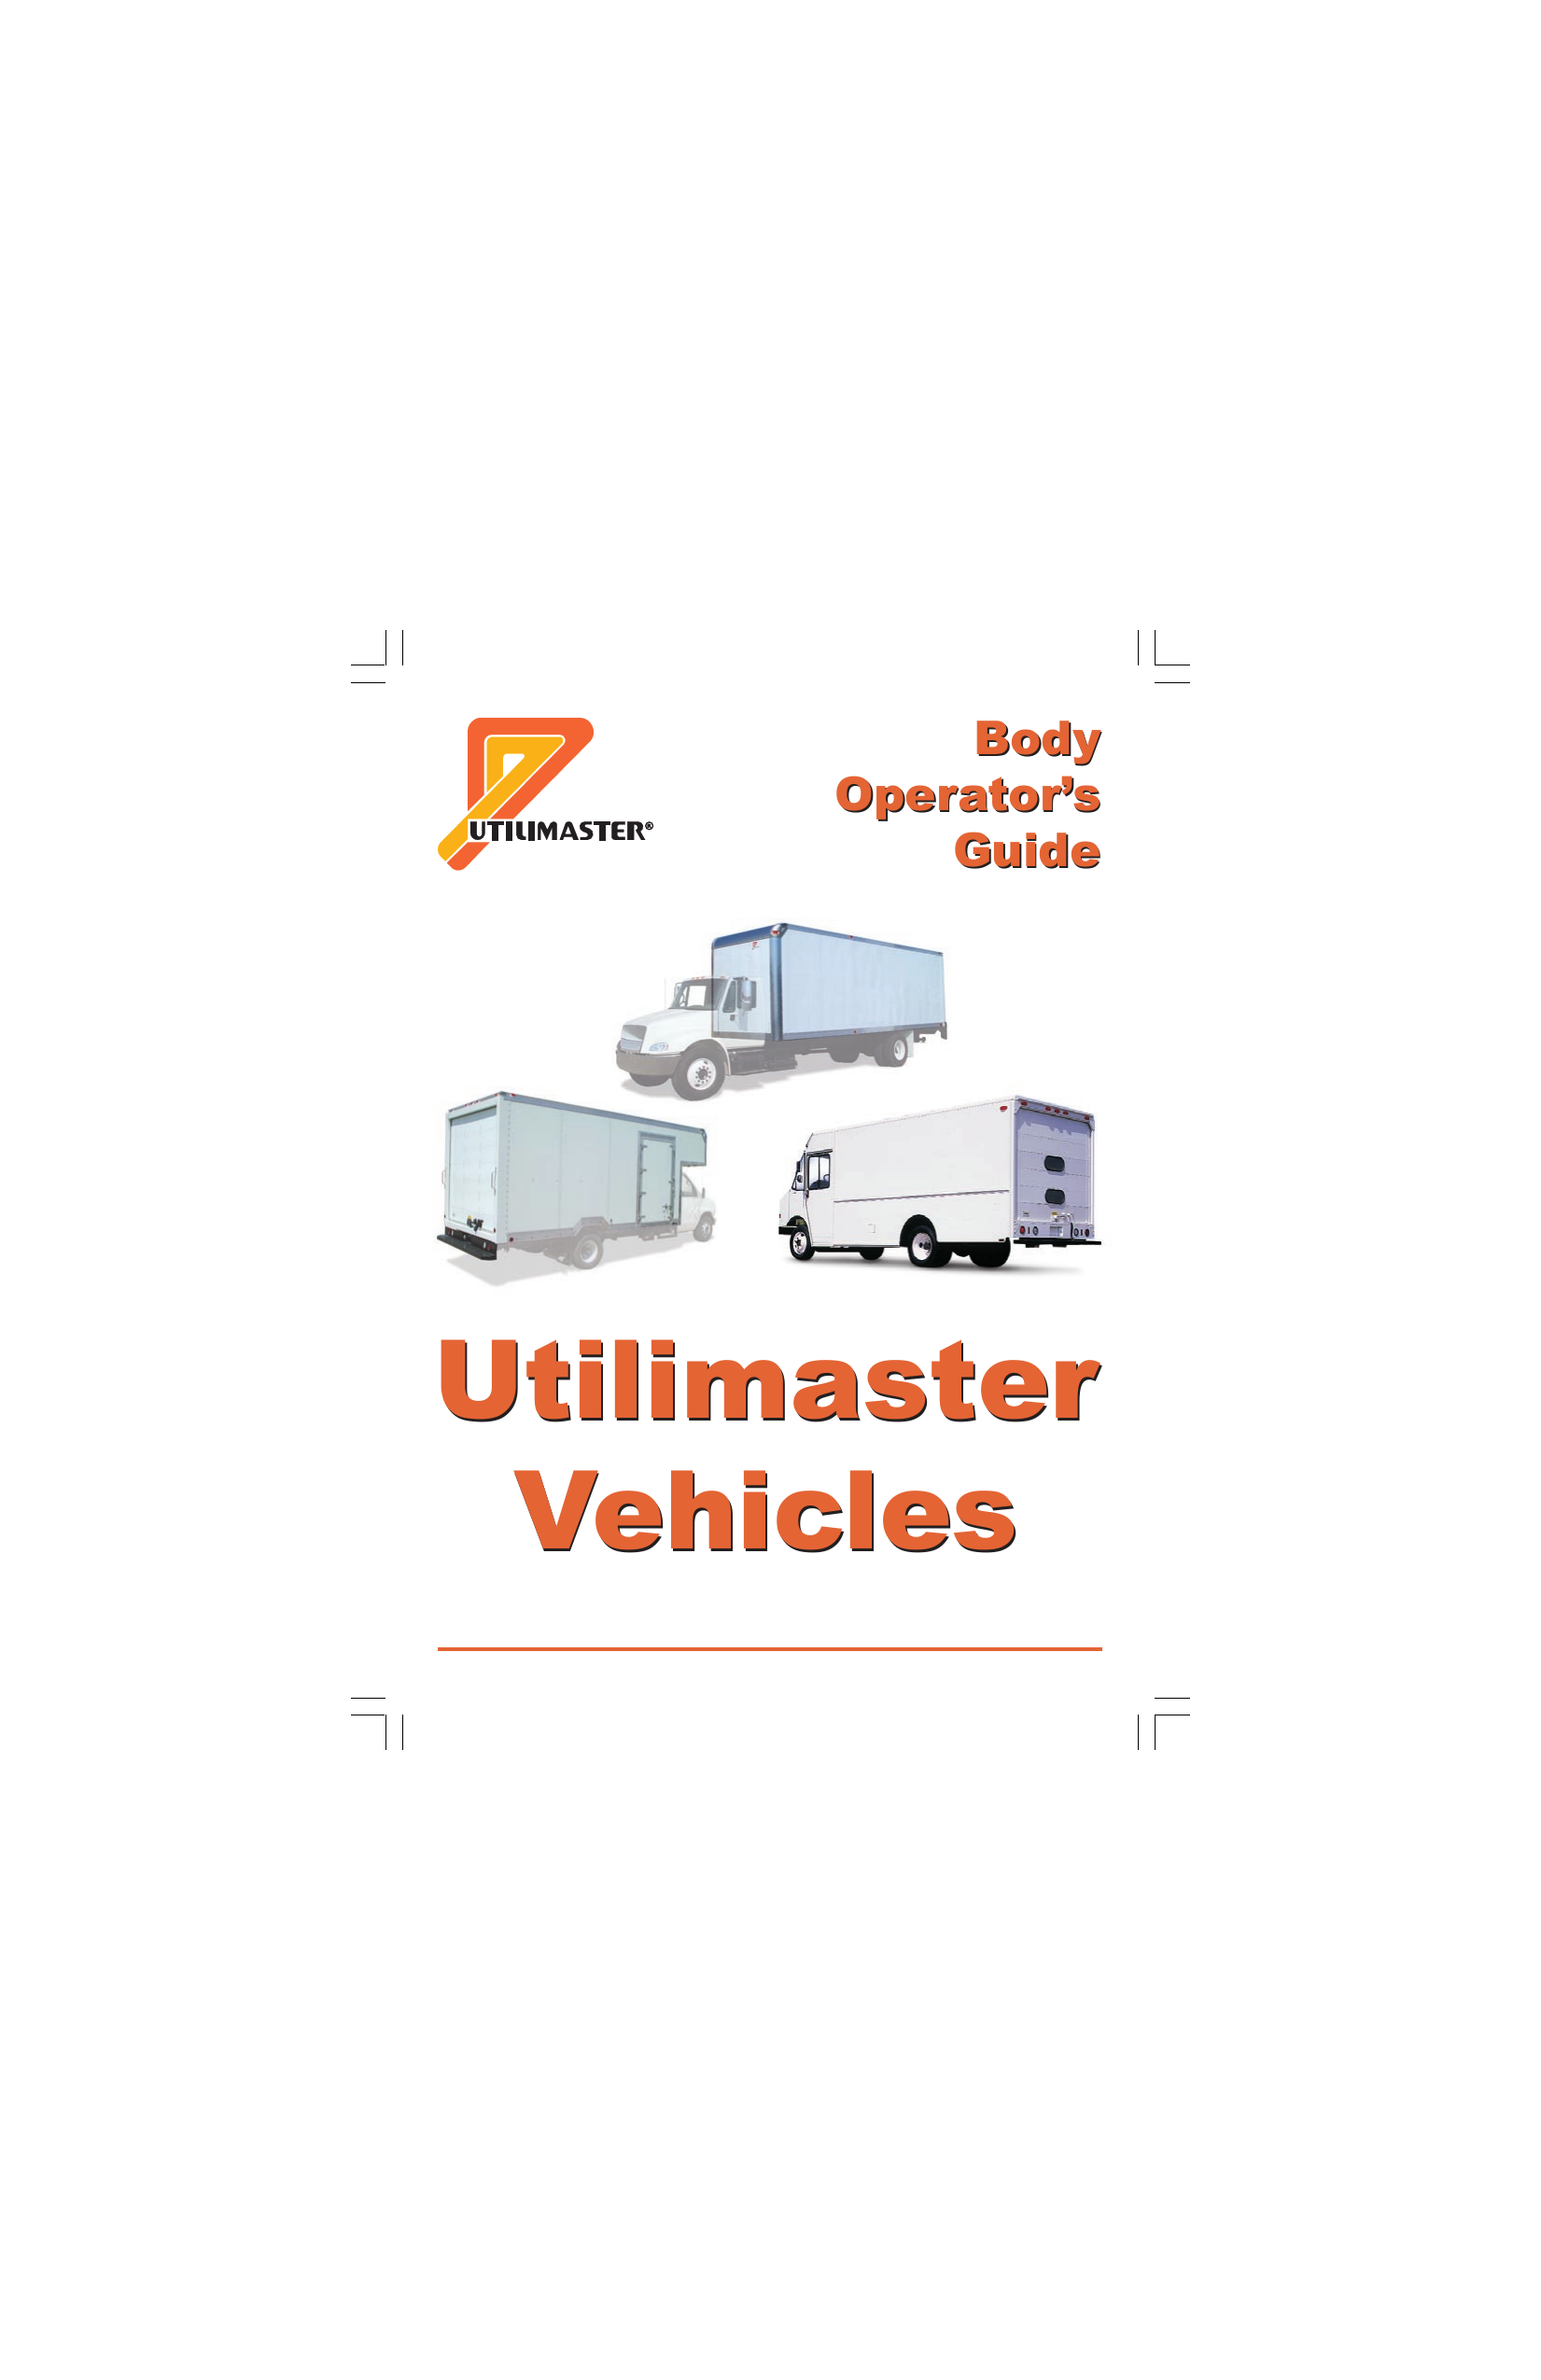 018470970_1 430316b1e308fc233e3b66c7e7b3f4c2 utilimaster vehicles body operator`s guide